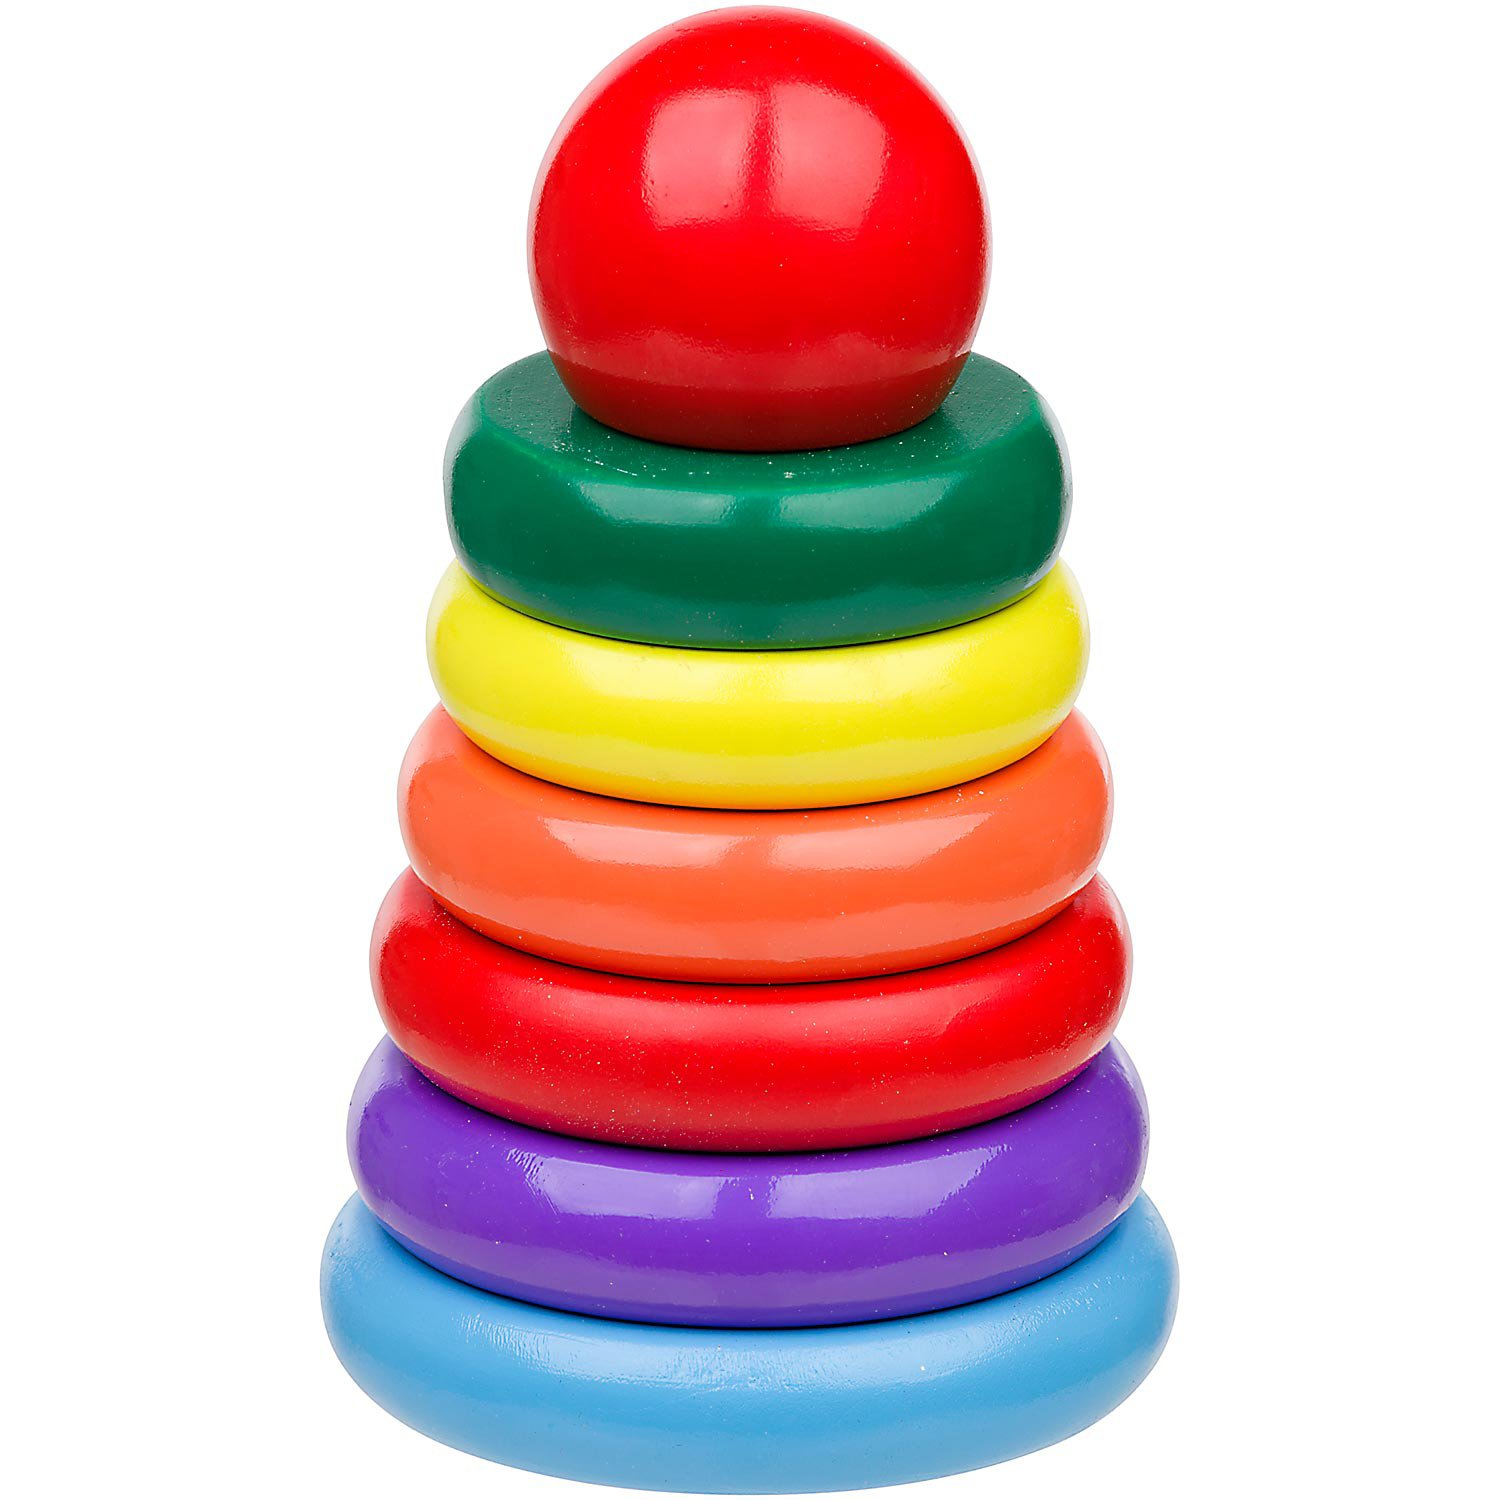 Petco - Petco Stackable Ring Tower Small Animal Chews